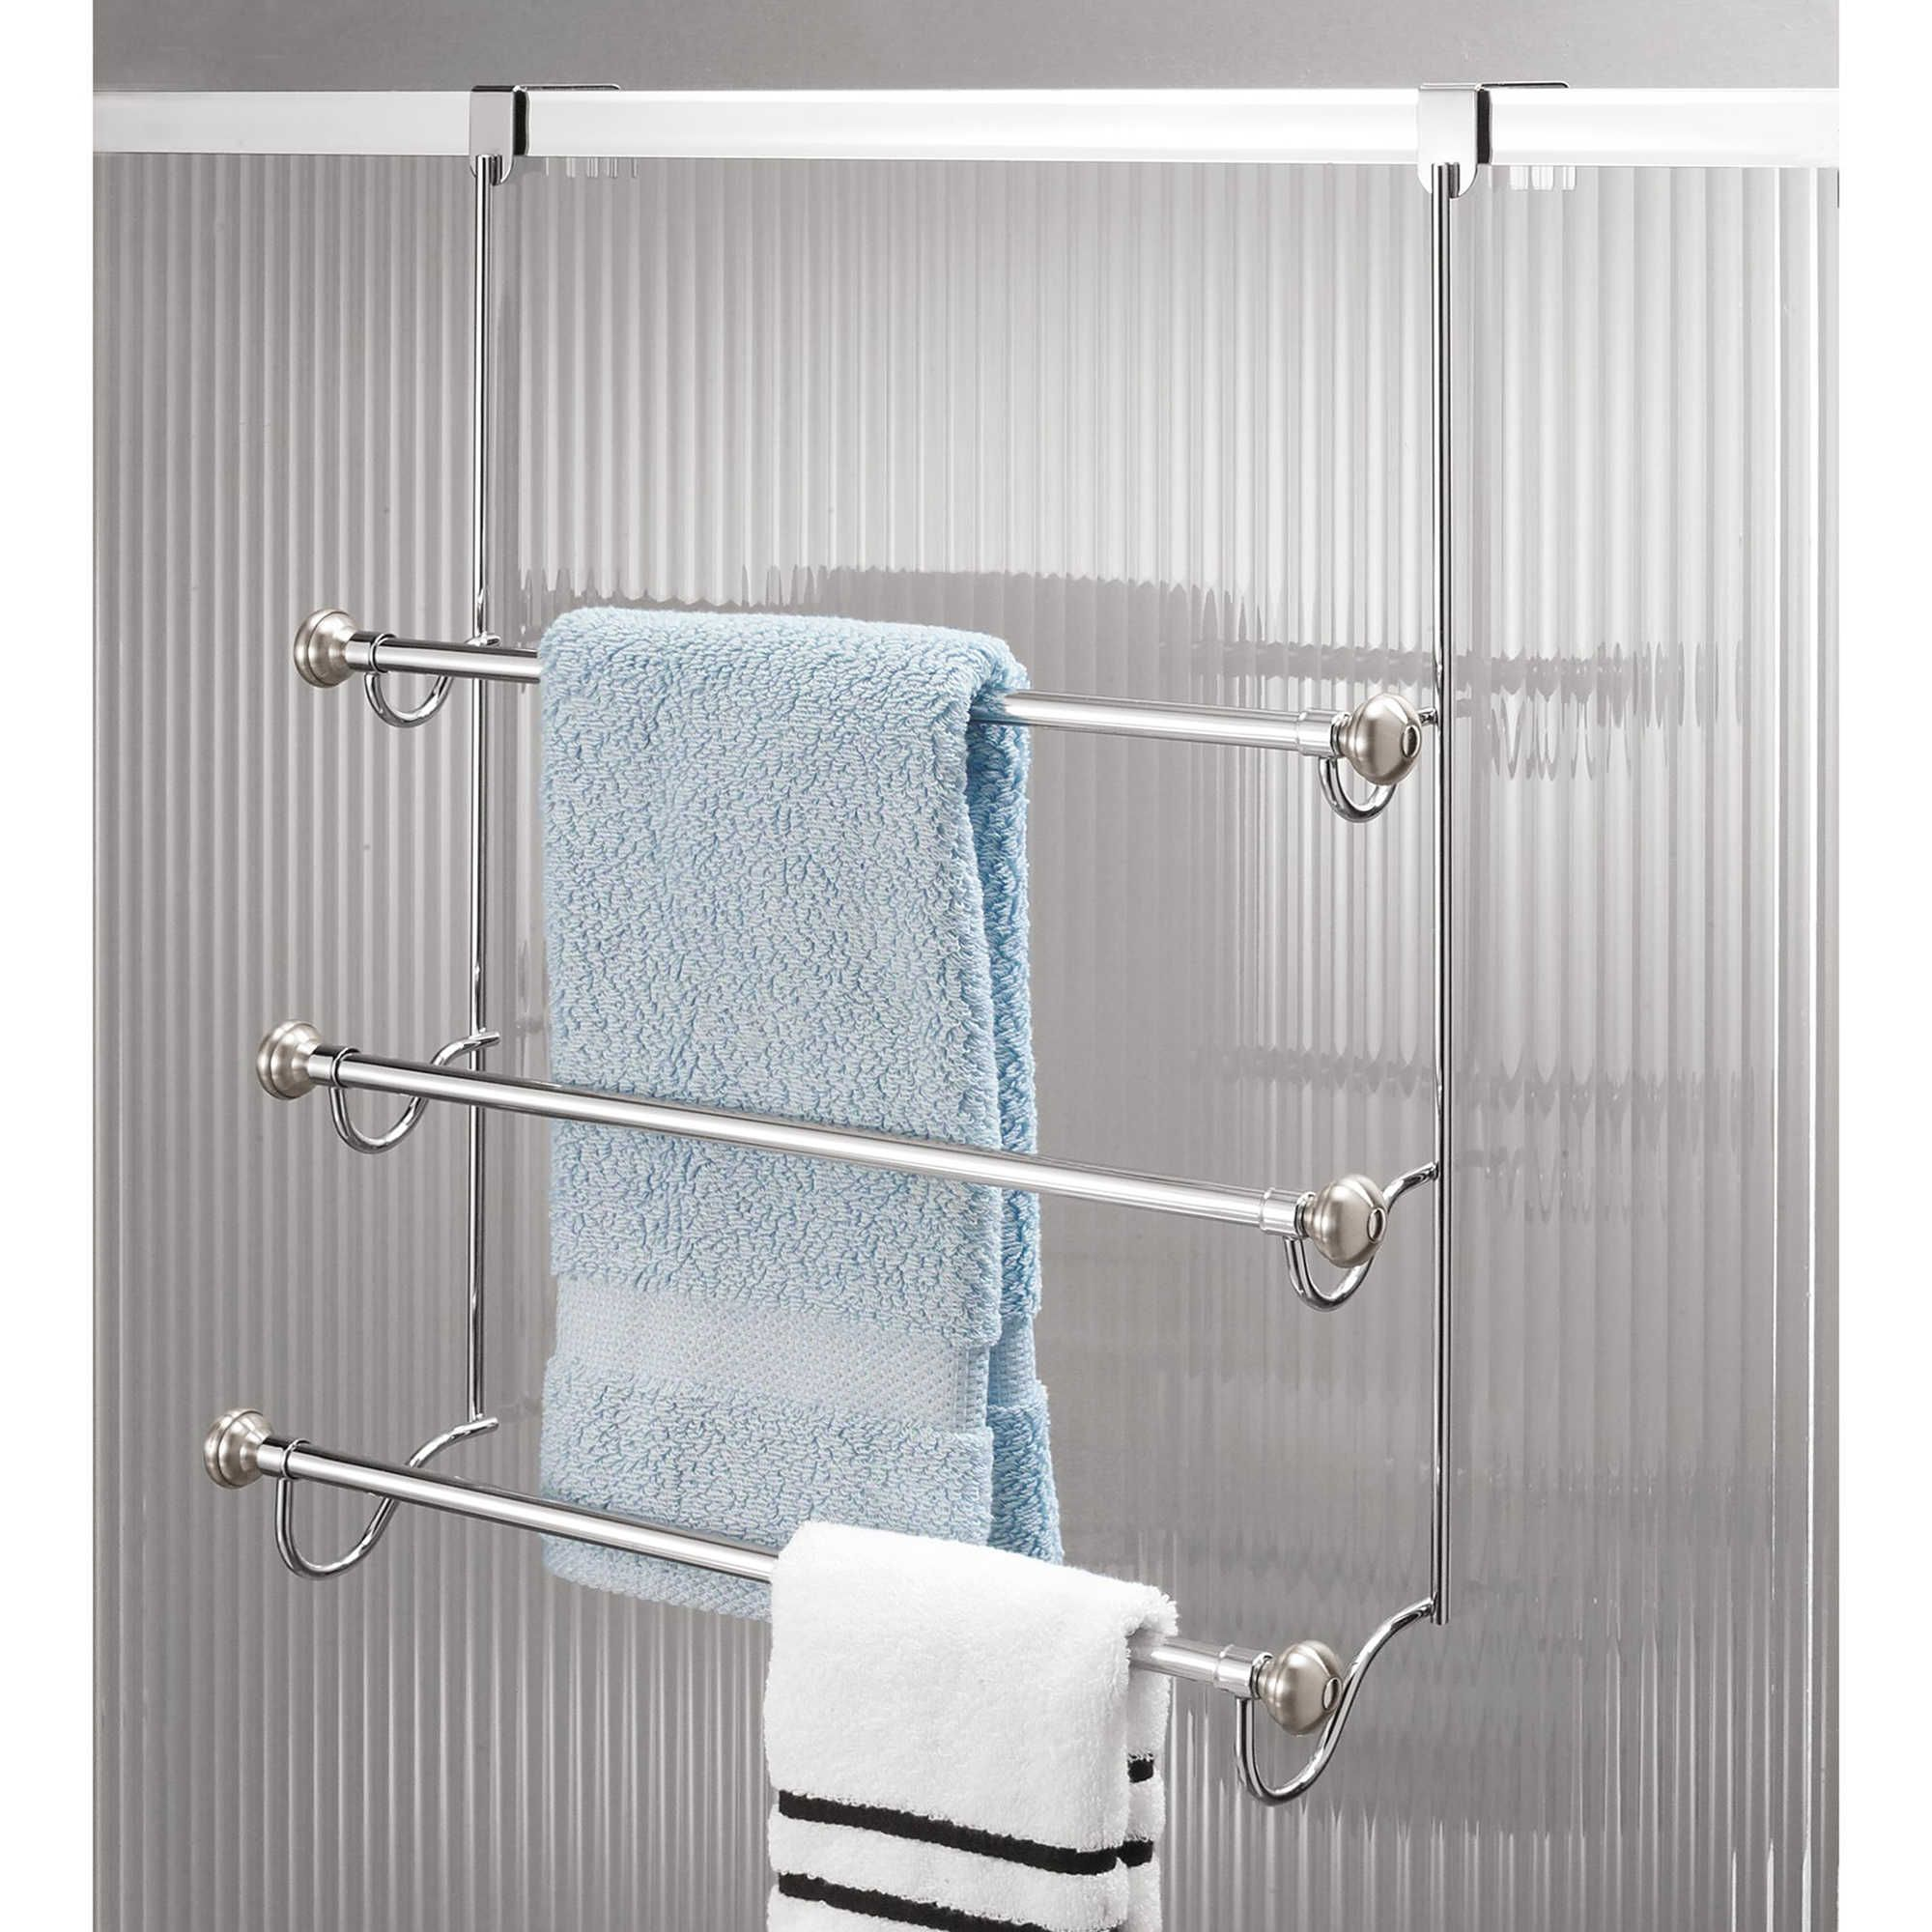 InterDesign® York 3-Tier Over-the-Door Towel Rack in Brushed ...